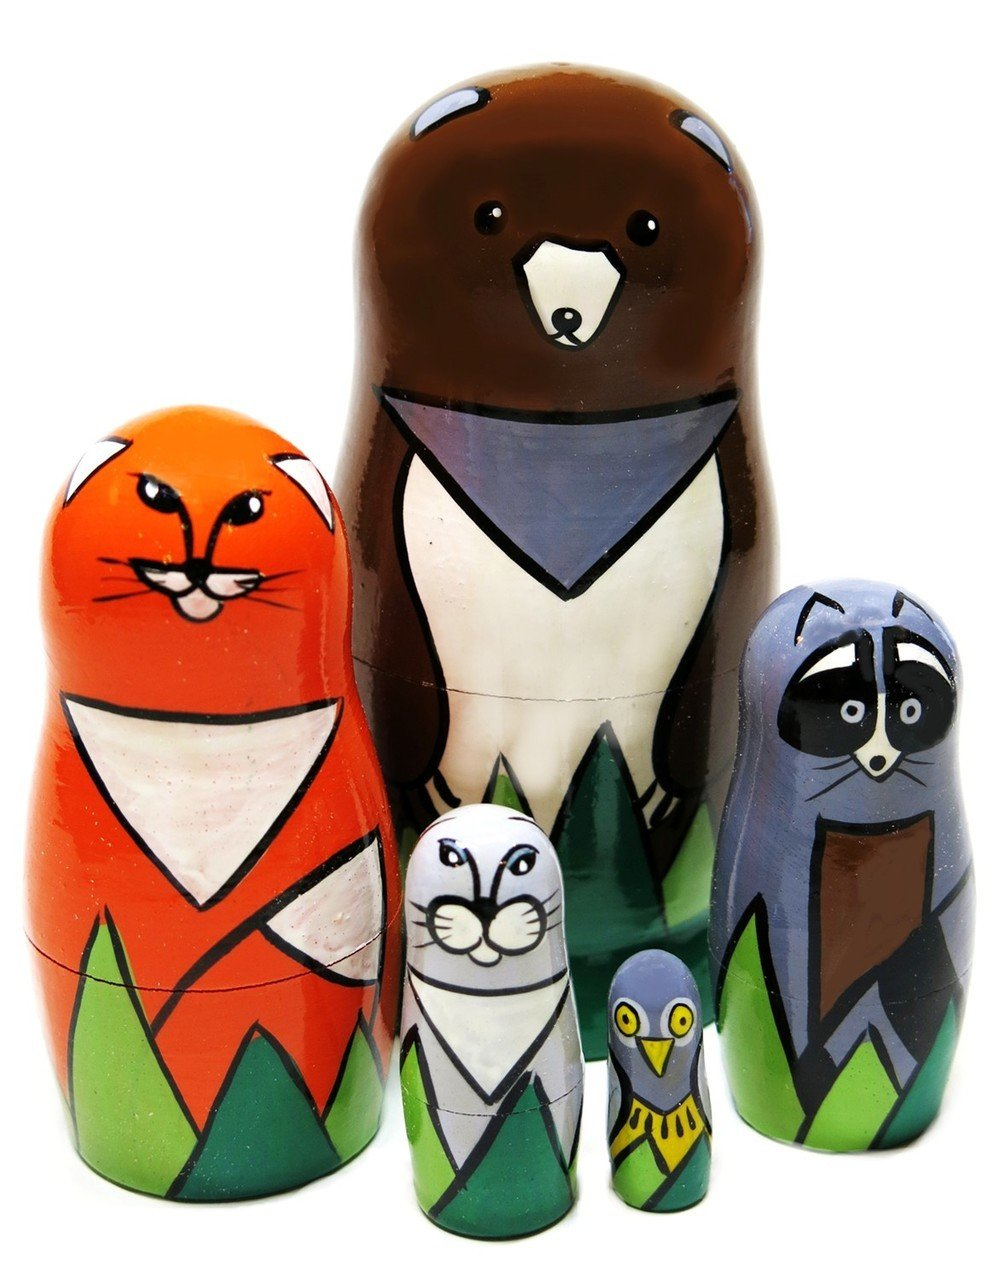 European Forest Animals 5-Piece 4.5'' Russian Nesting Doll Kids Educational Wooden Toy Set